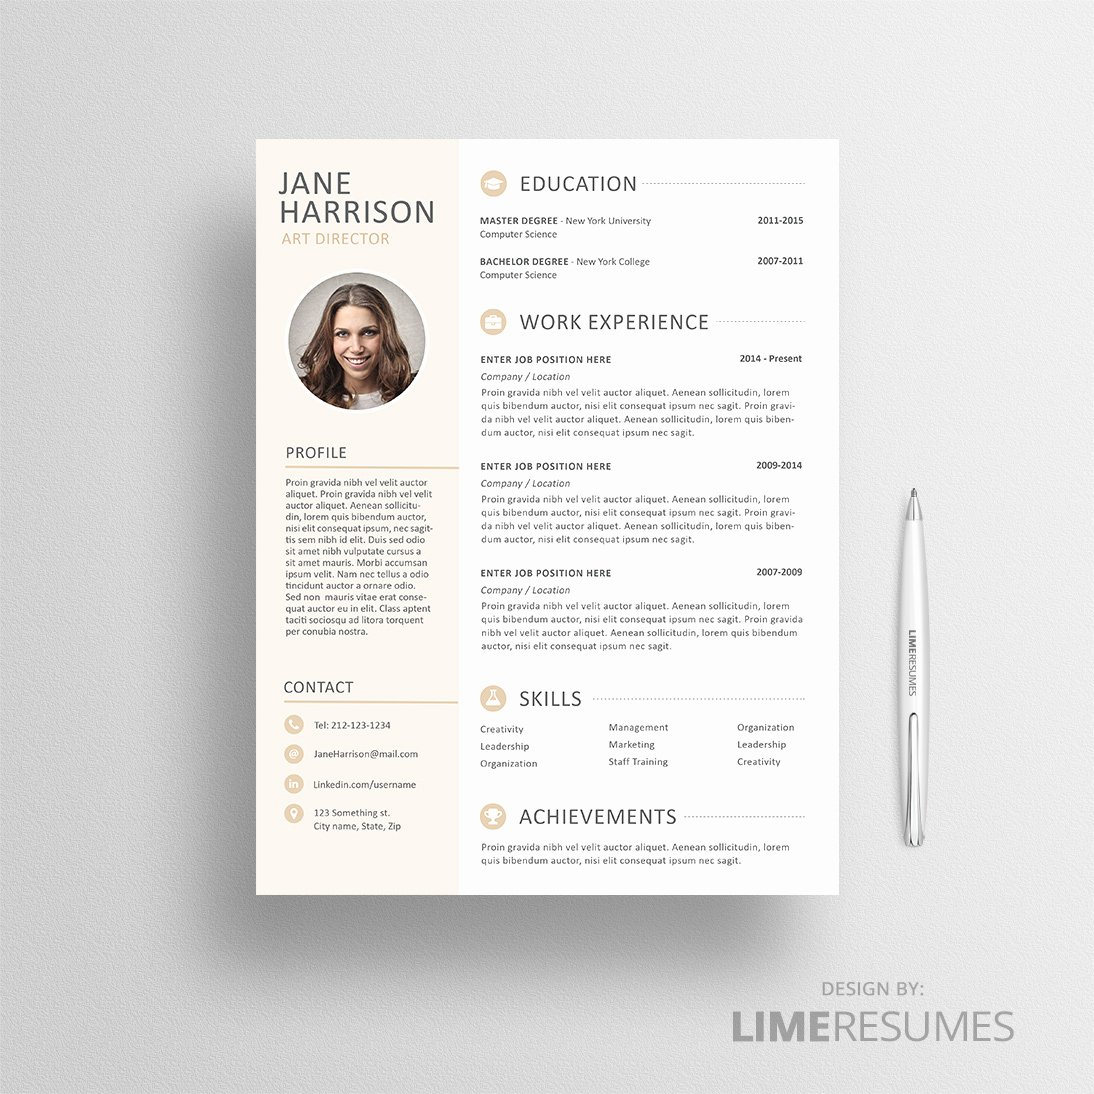 Resume with Cv Template with Limeresumes